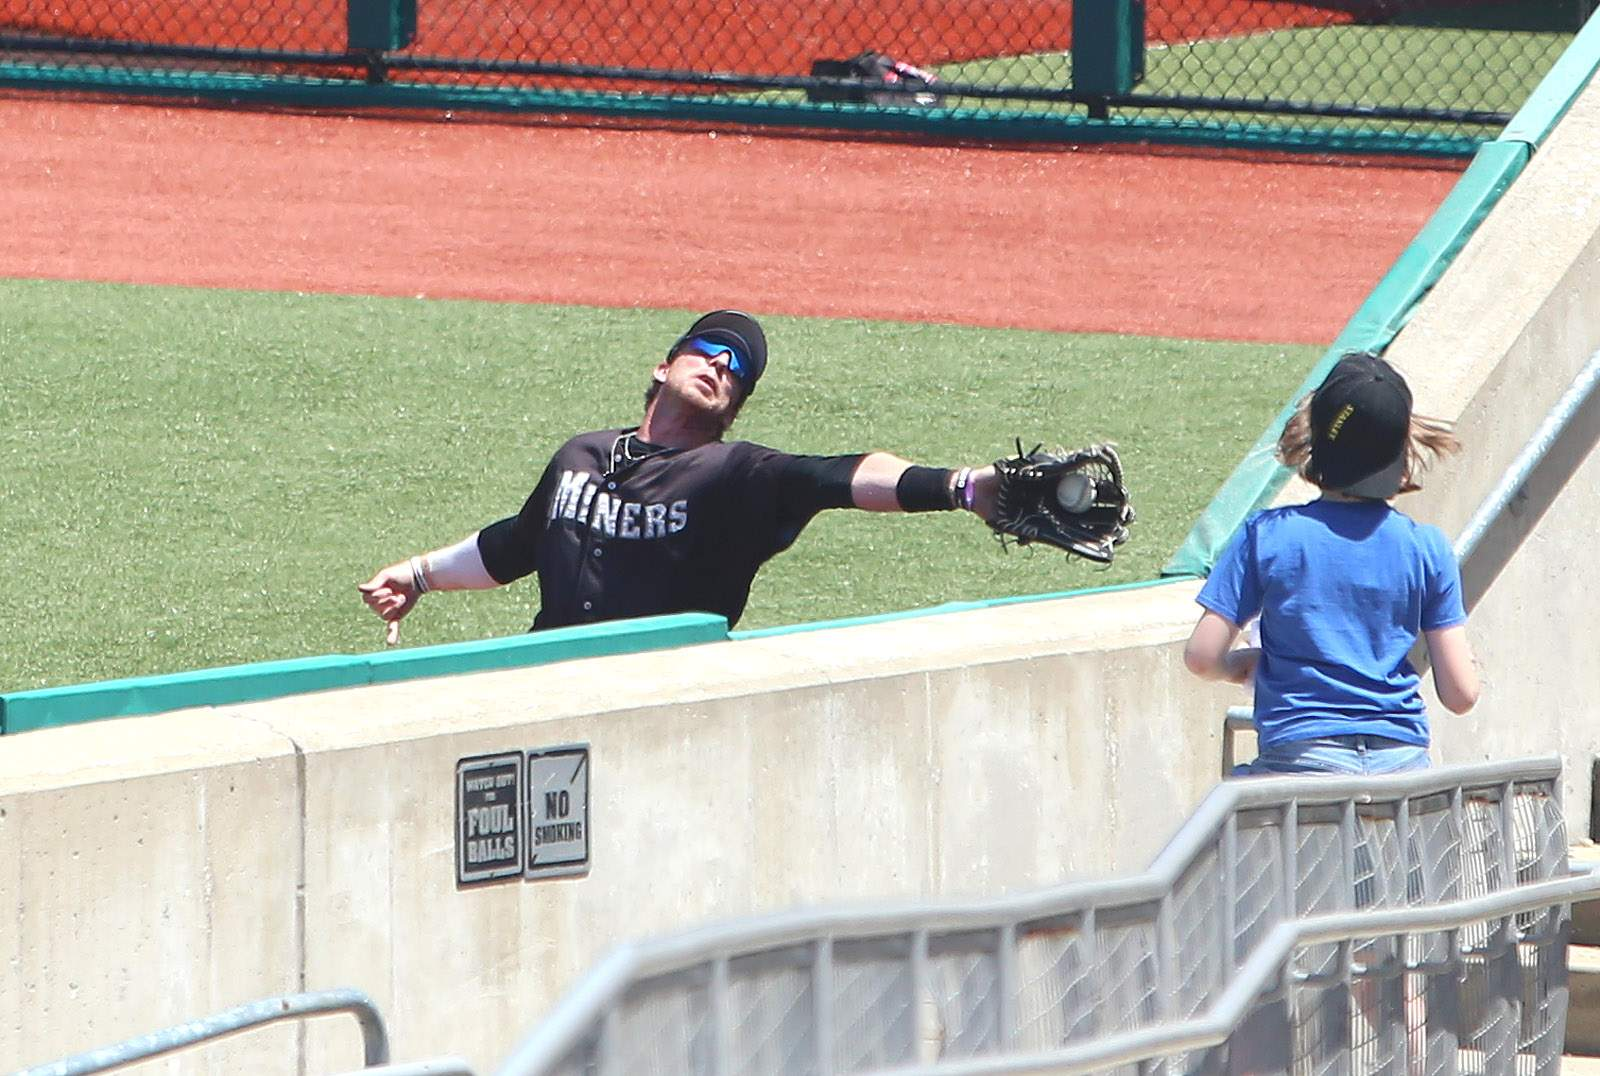 Bryson Bowman makes a catch near the wall during Tuesday's exhibition game against Evansville.